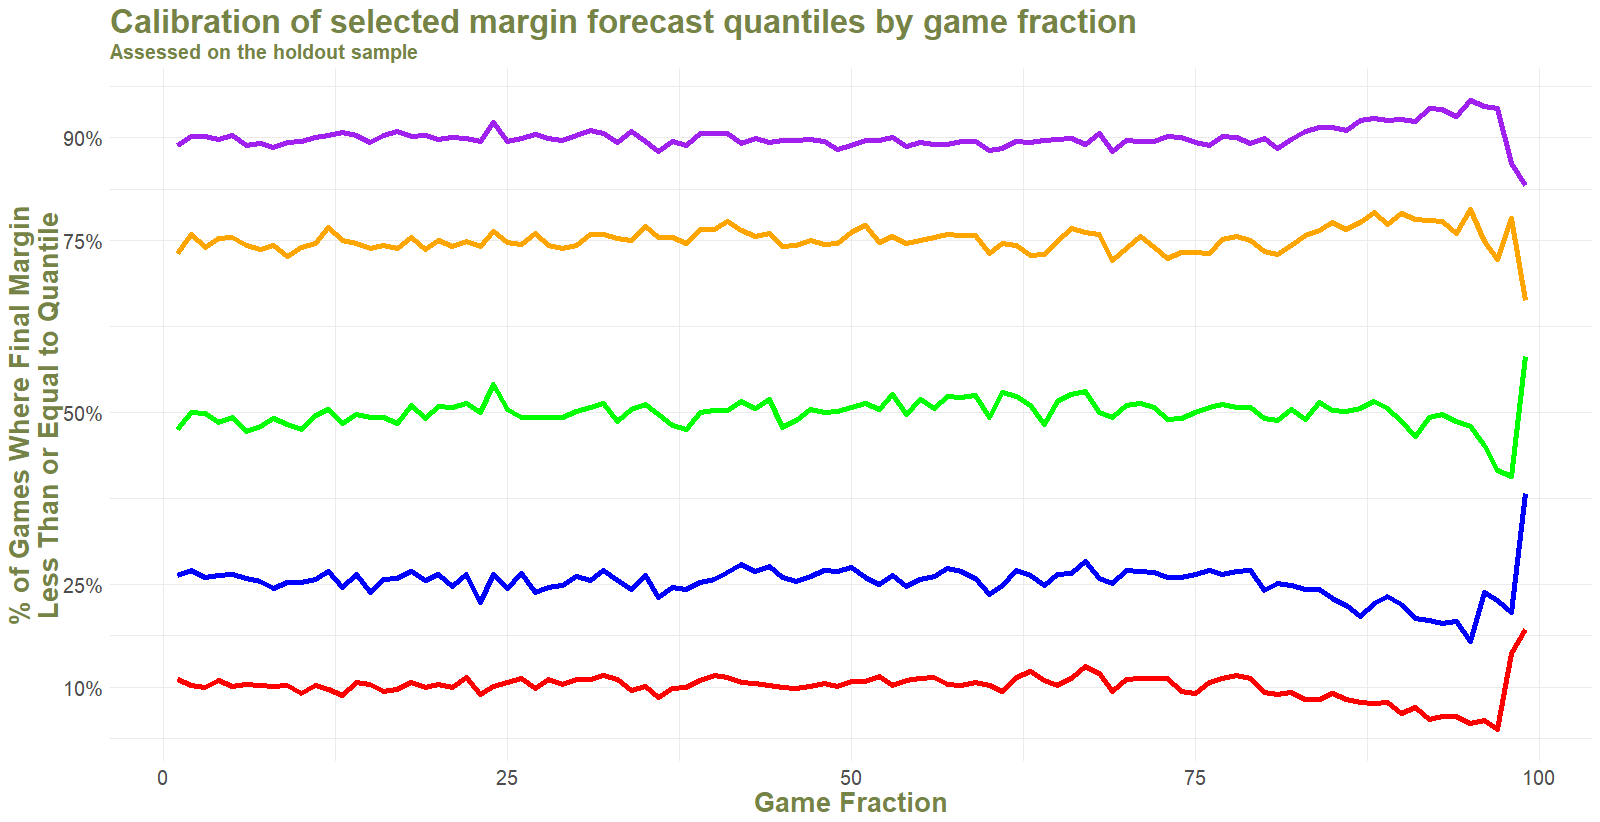 Calibration of Margin Forecast Quantiles by GF.png